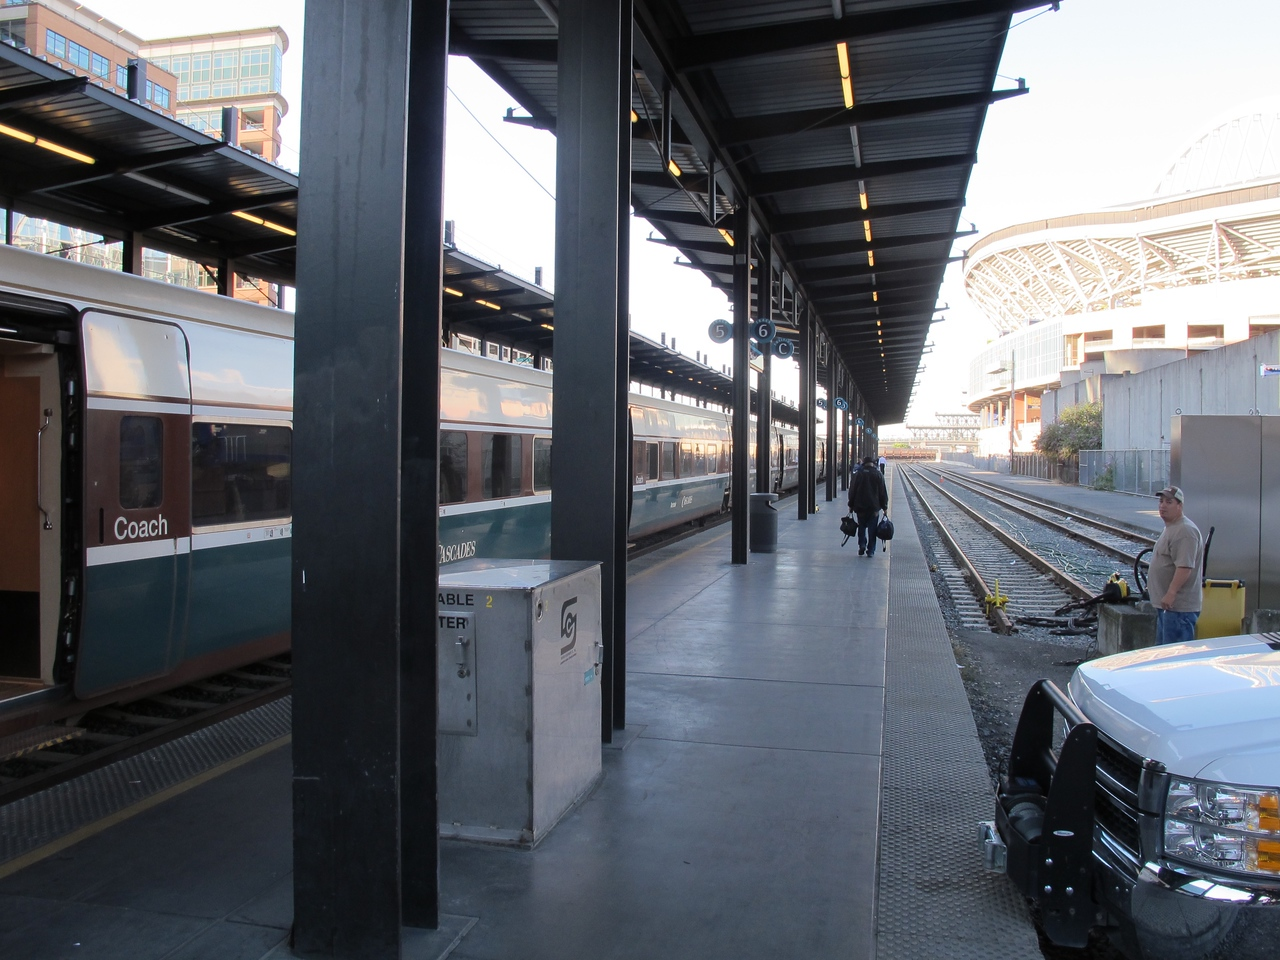 The Seattle station, boarding the train to Portand.